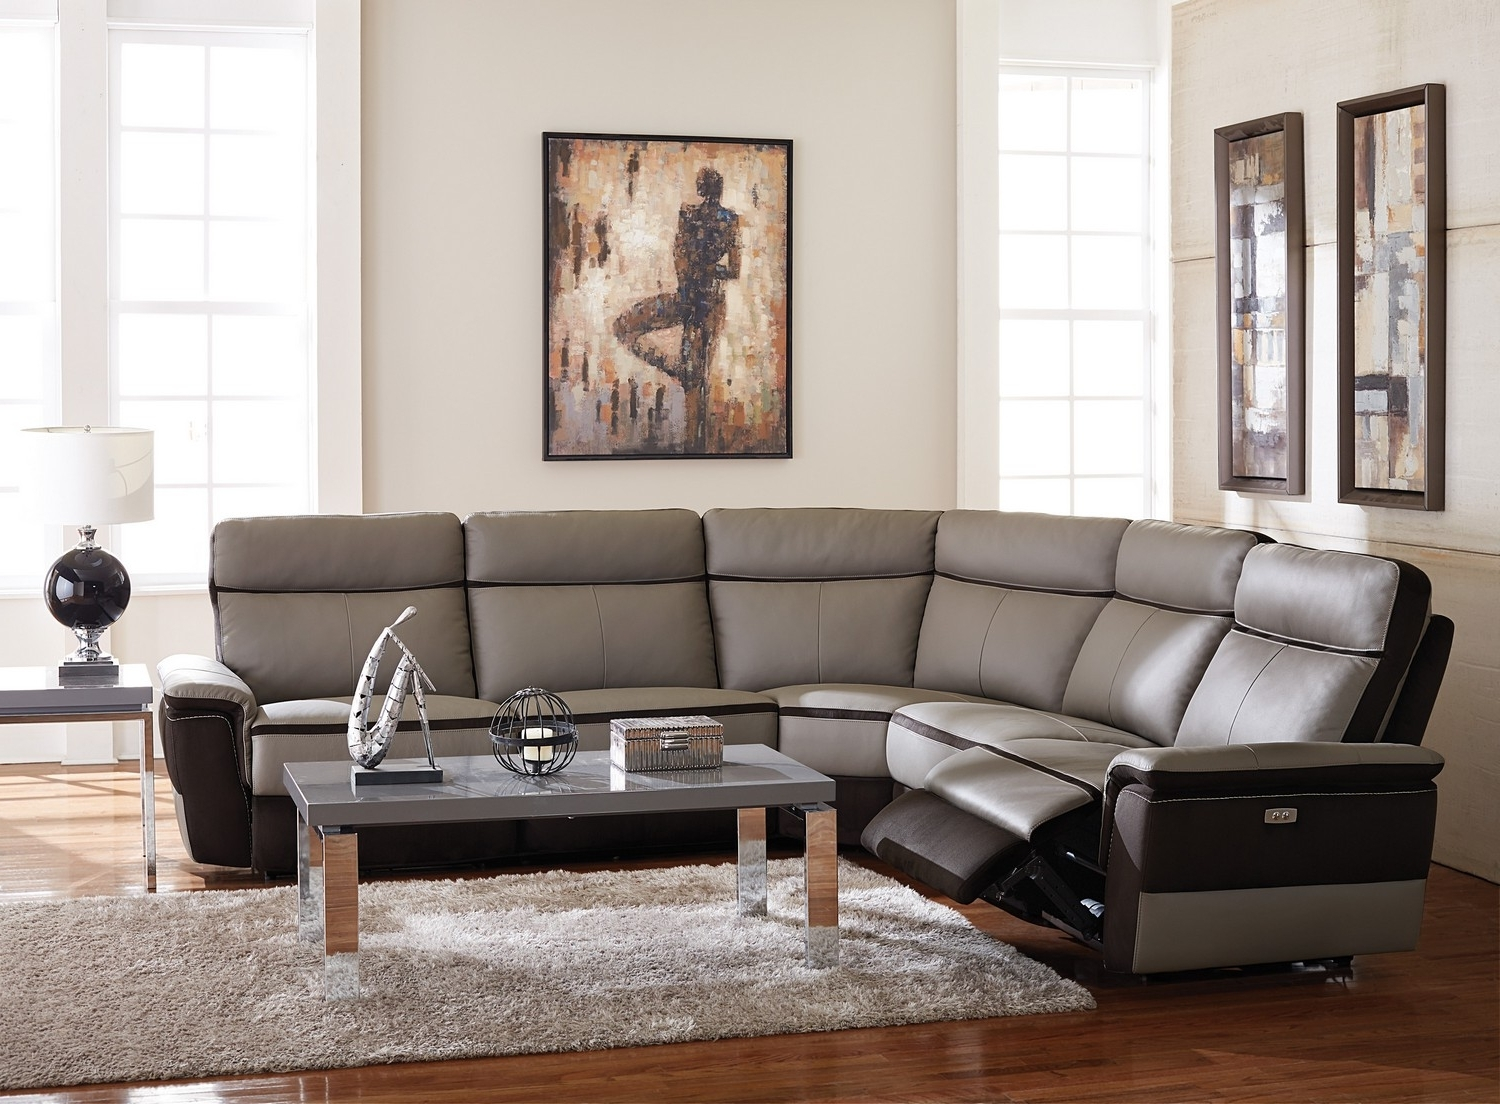 2018 Modern Reclining Sectional Oversized Sectionals With Chaise Blue Pertaining To Reclining Sectionals With Chaise (View 13 of 15)